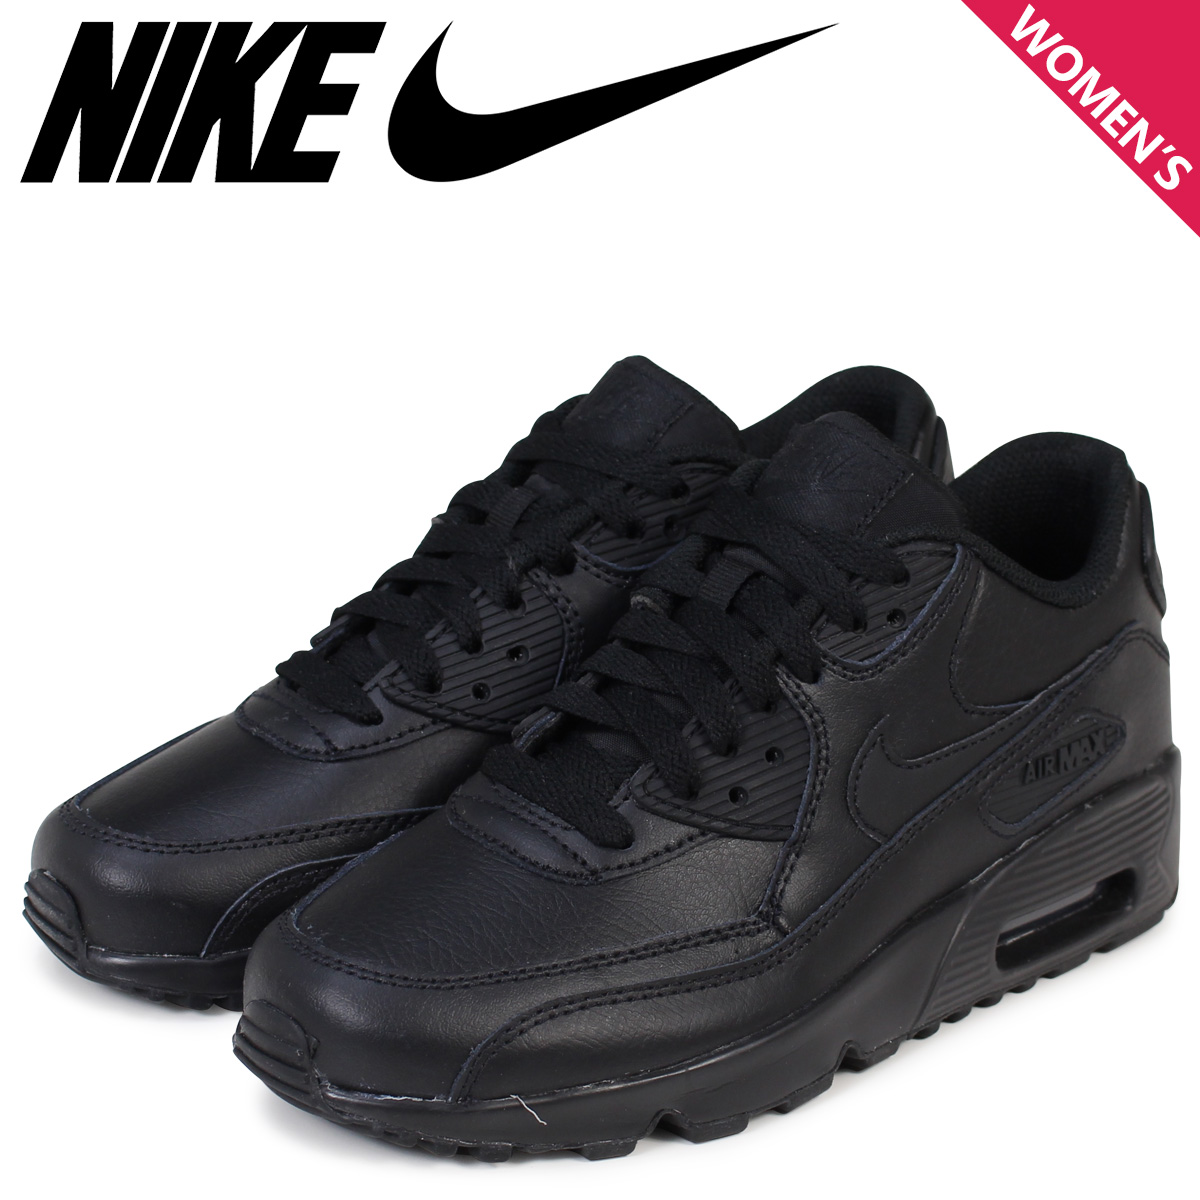 24908b97c06f96 SneaK Online Shop  Nike Air Max Womens NIKE sneakers AIR MAX 90 LTR GS Air